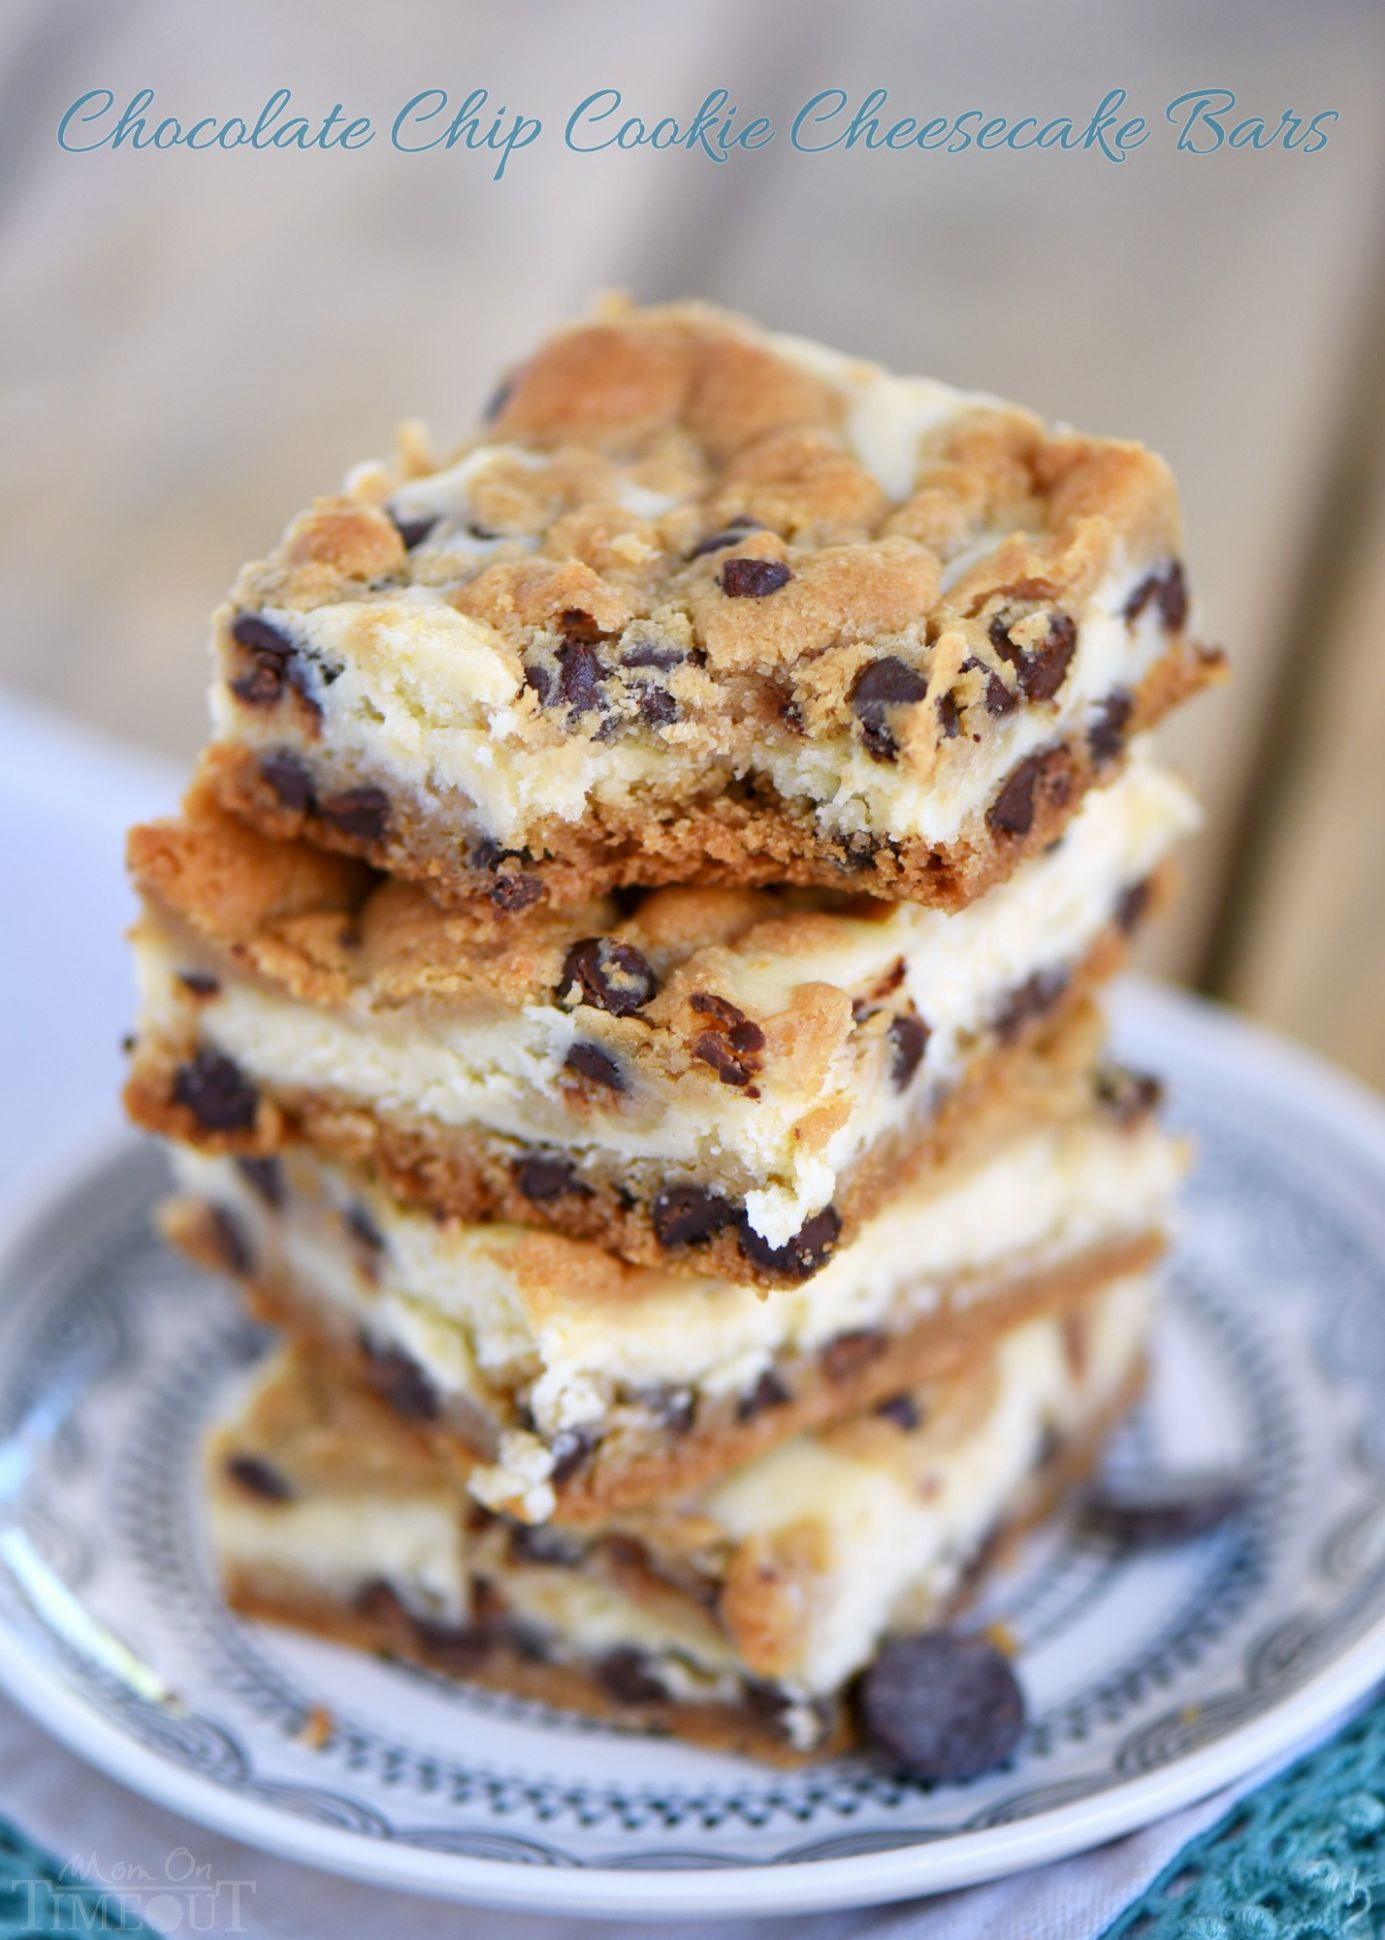 Chocolate Chip Cookie Cheesecake Bars - Easy Recipes Dessert